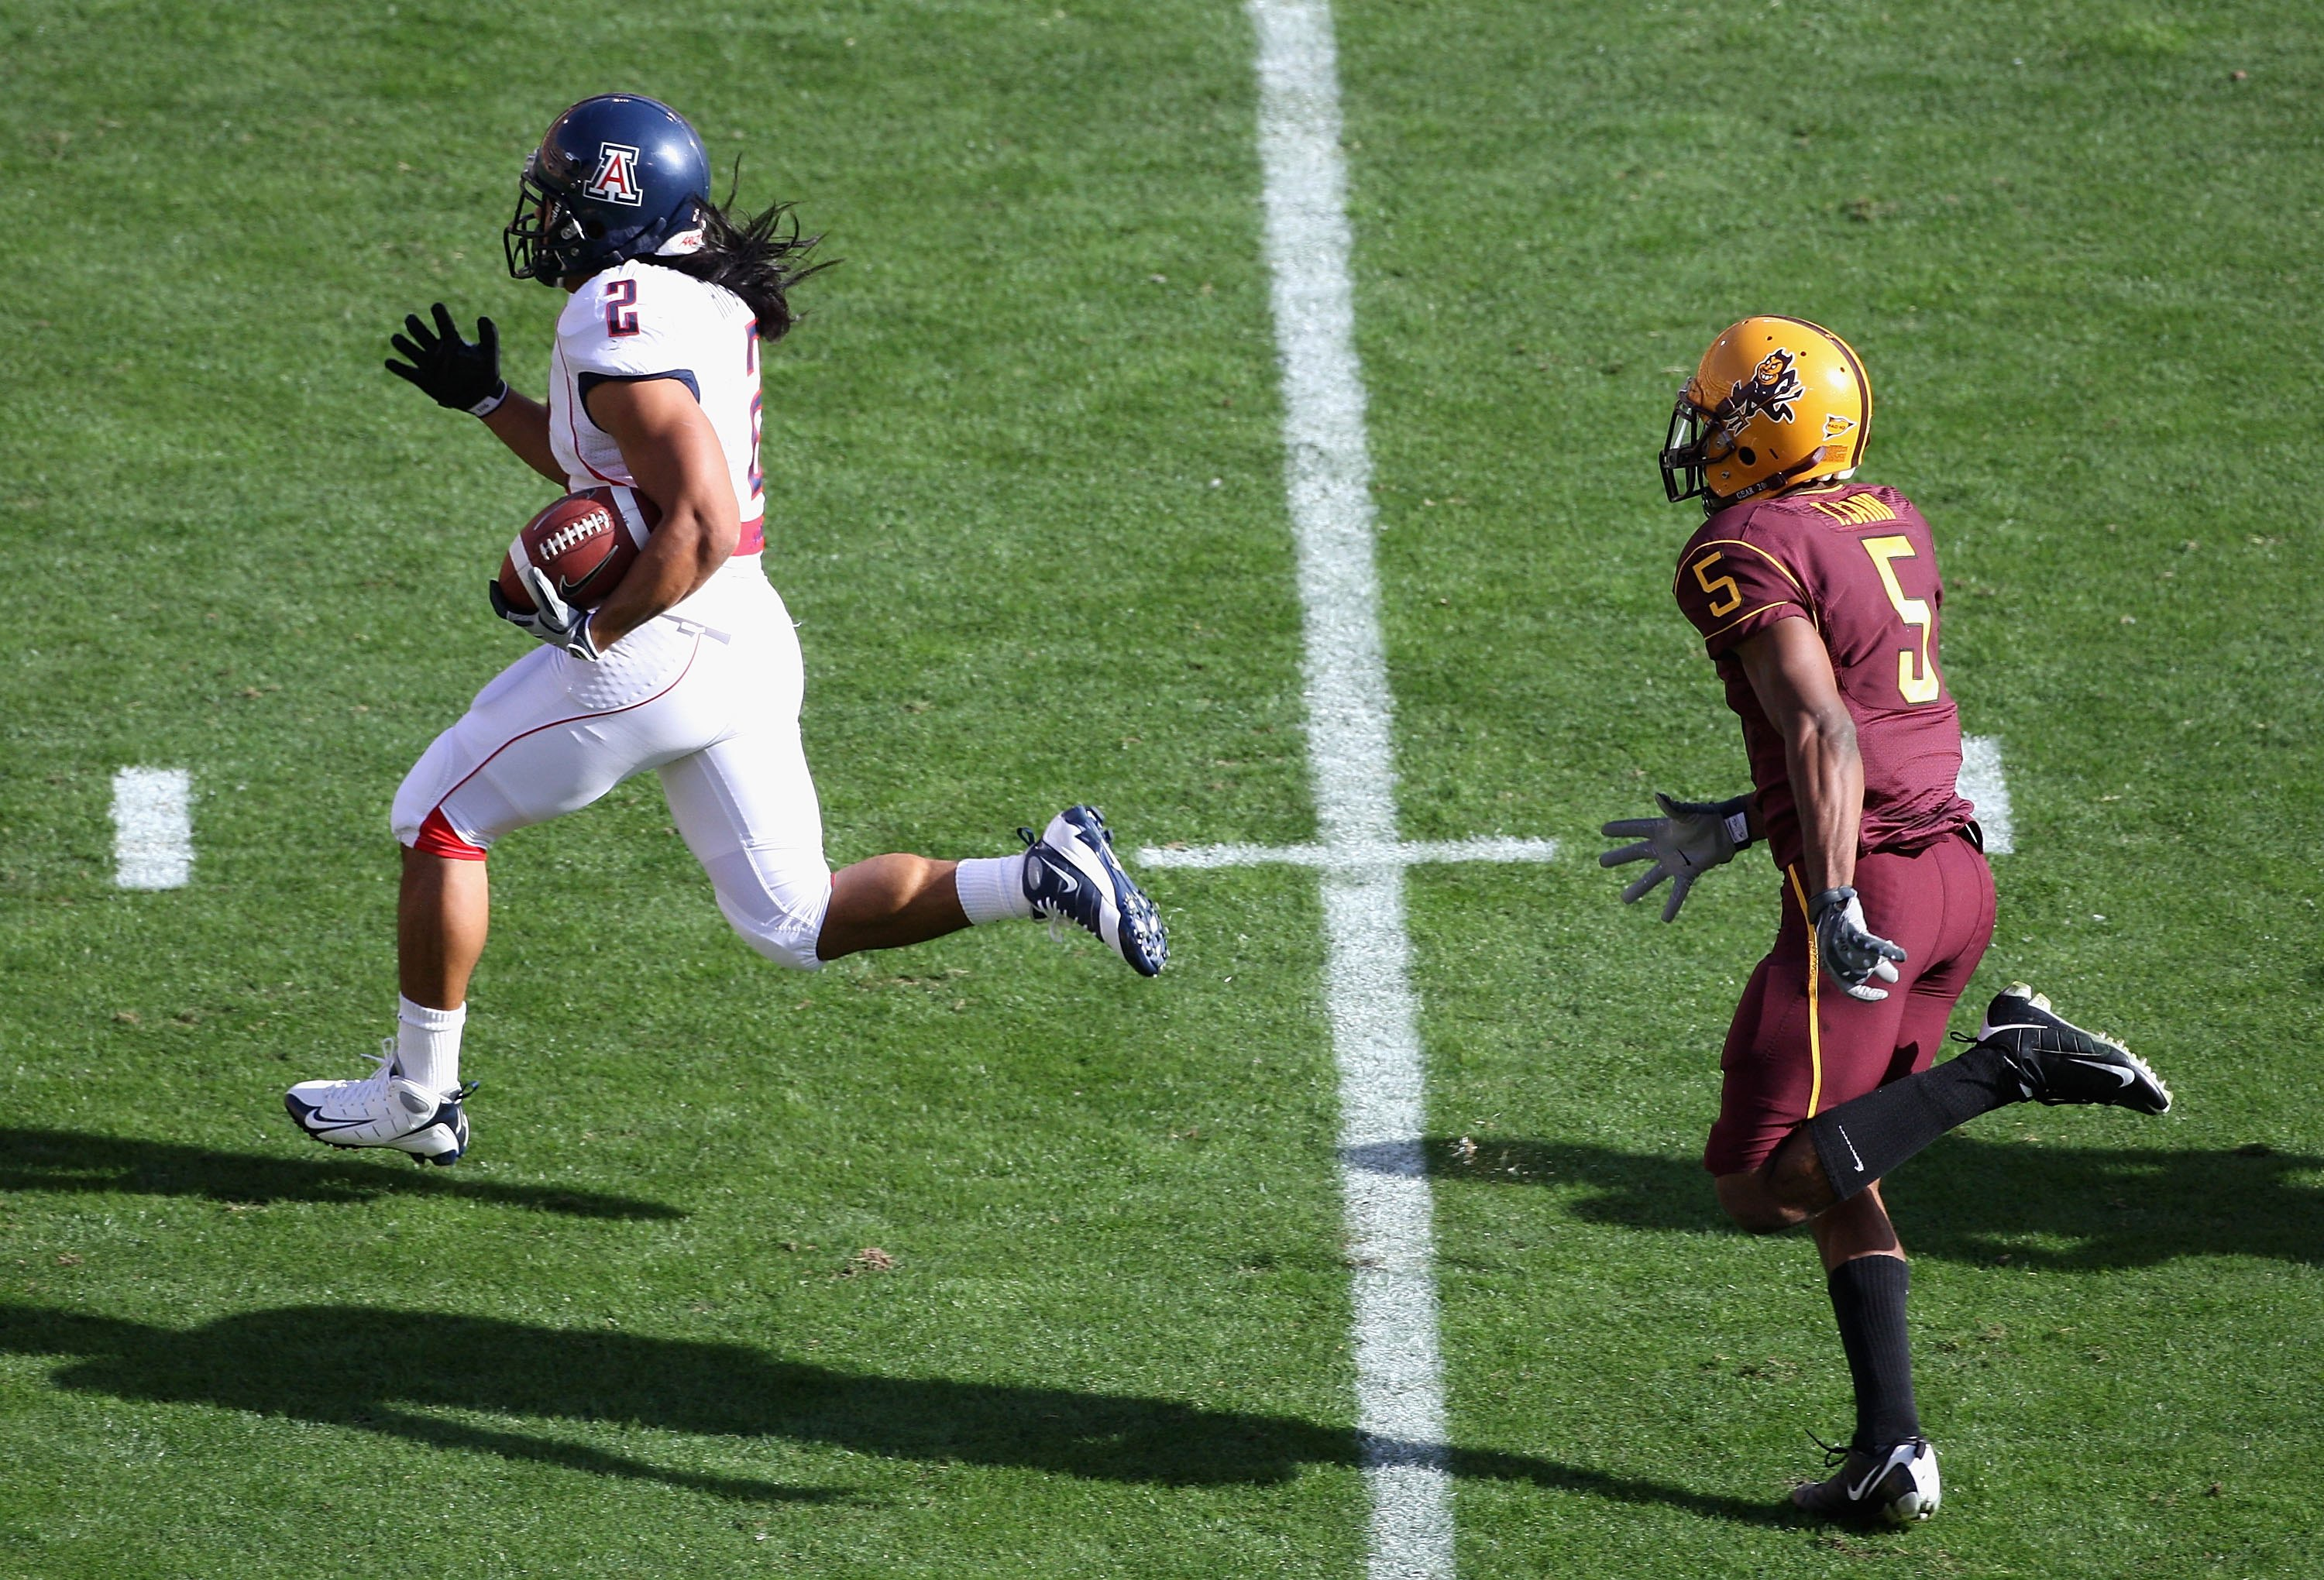 TEMPE, AZ - NOVEMBER 28:  Wide reciver Keola Antolin #2 of the Arizona Wildcats rushes for a 68 yard touchdown past Terell Carr #5 of the Arizona State Sun Devils during the college football game at Sun Devil Stadium on November 28, 2009 in Tempe, Arizona